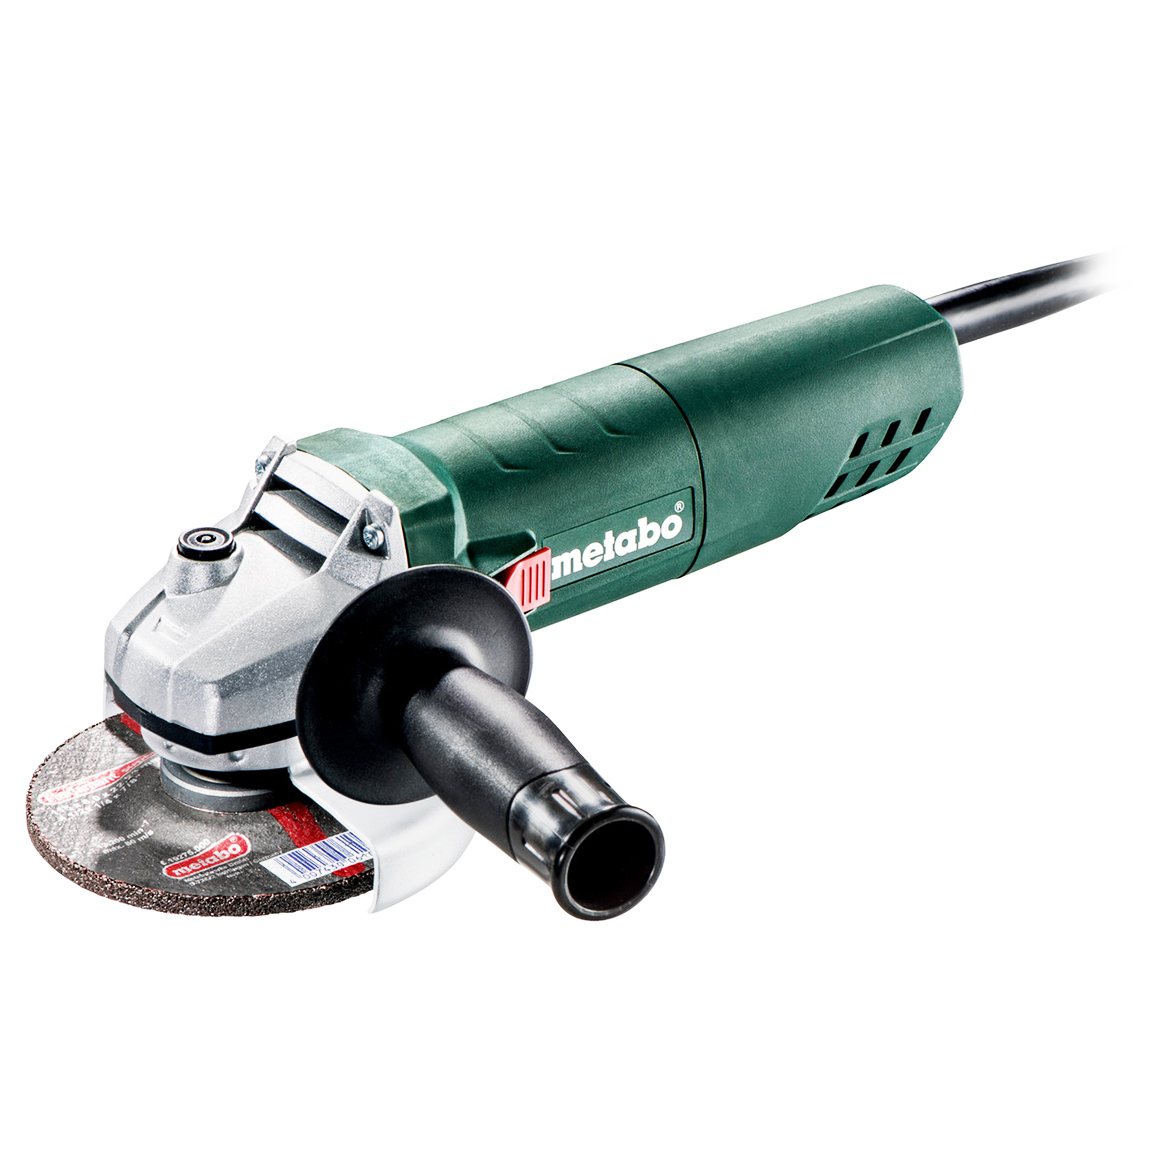 Metabo 601232420 4-1/2-Inch 8.0-Amp 11,000 RPM Angle Grin...